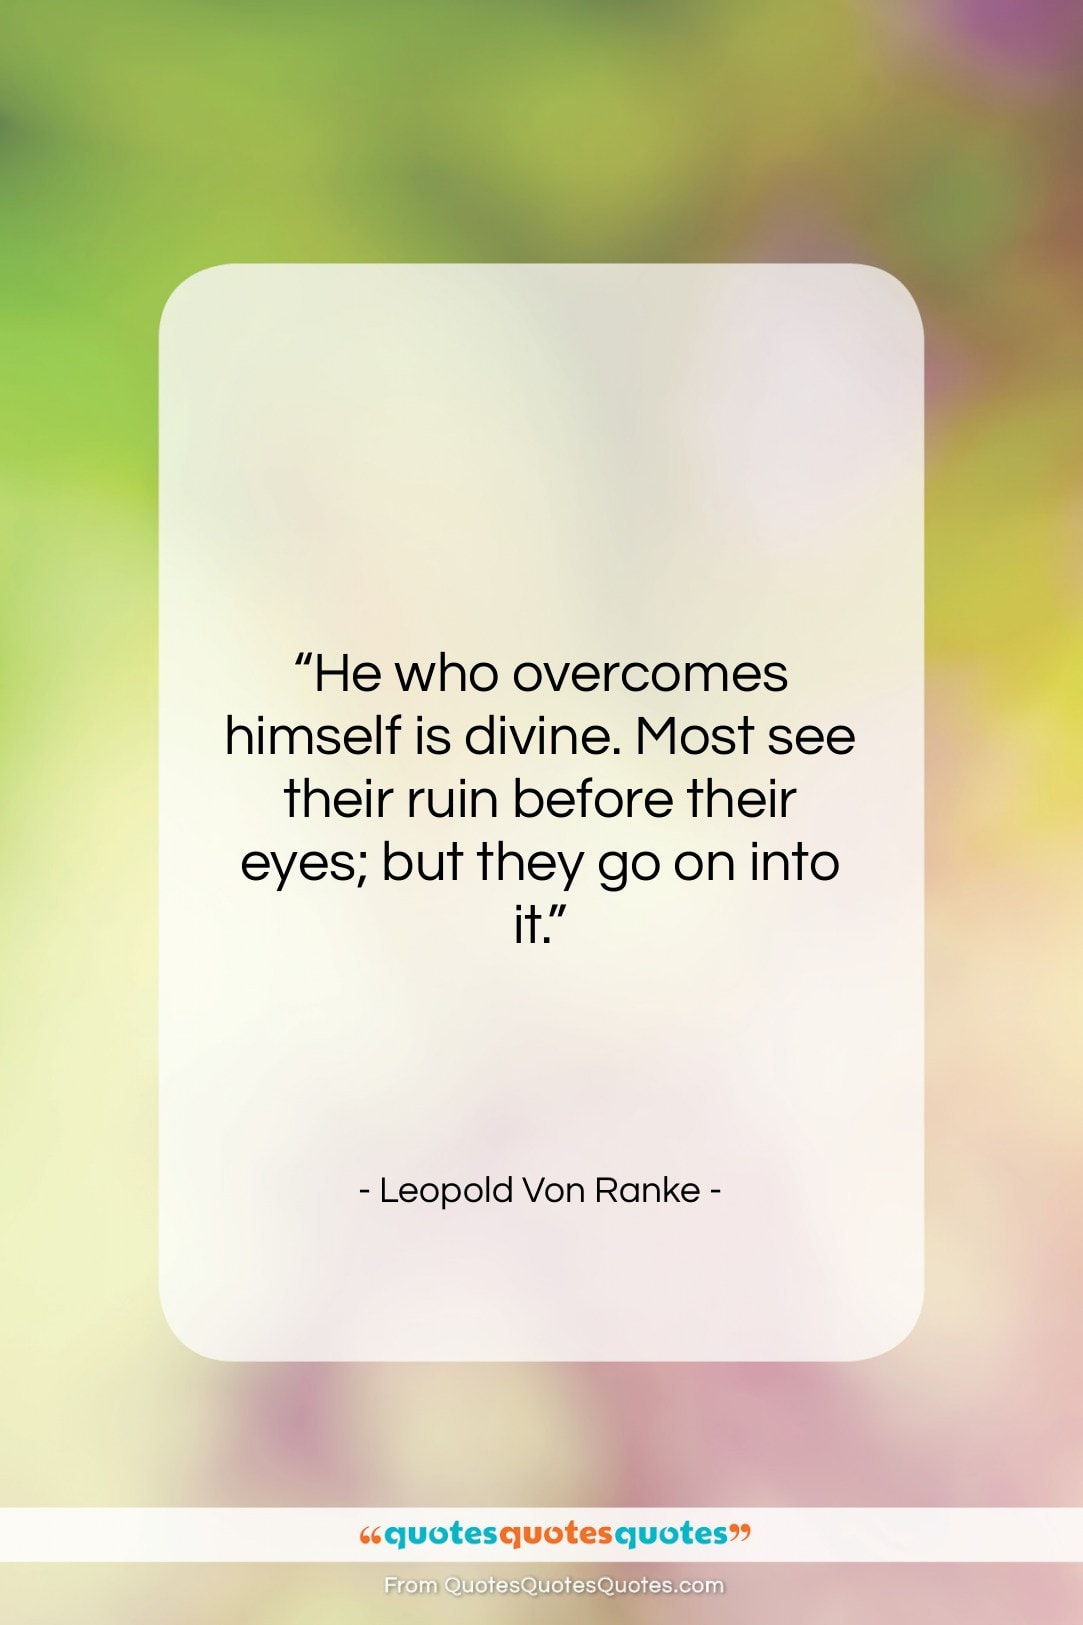 """Leopold Von Ranke quote: """"He who overcomes himself is divine. Most…""""- at QuotesQuotesQuotes.com"""